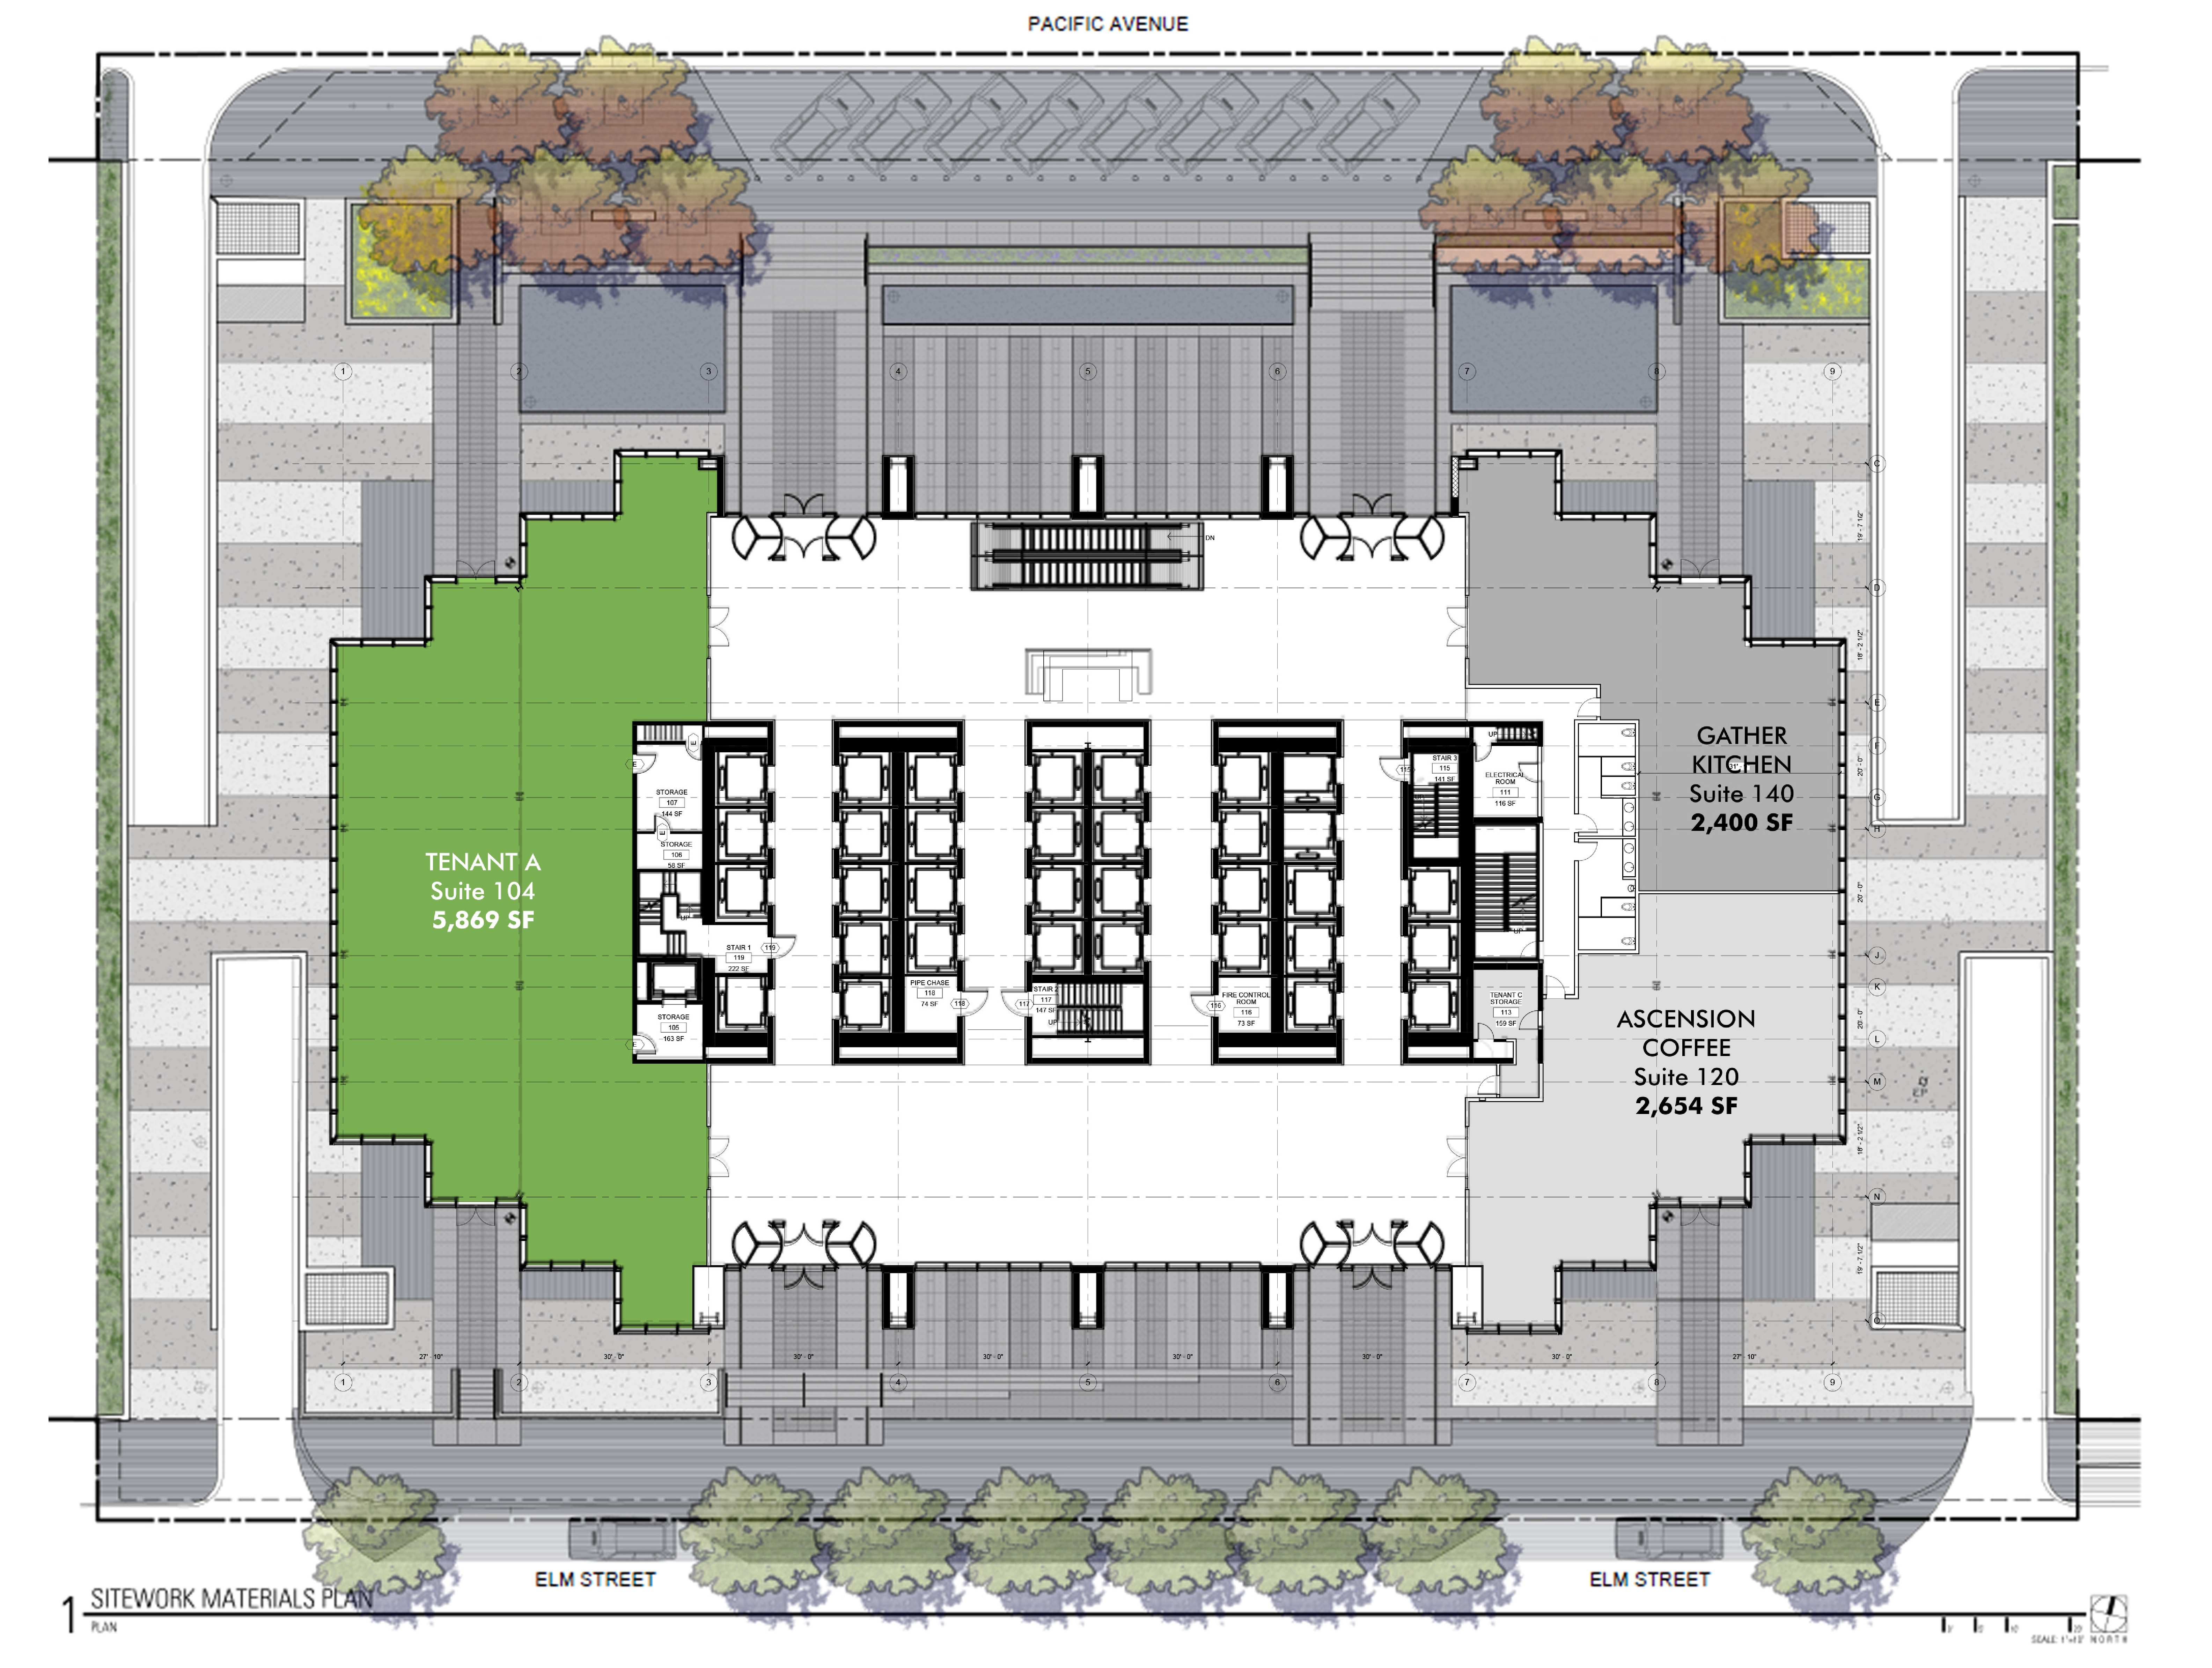 Thanksgiving Tower Retail: site plan